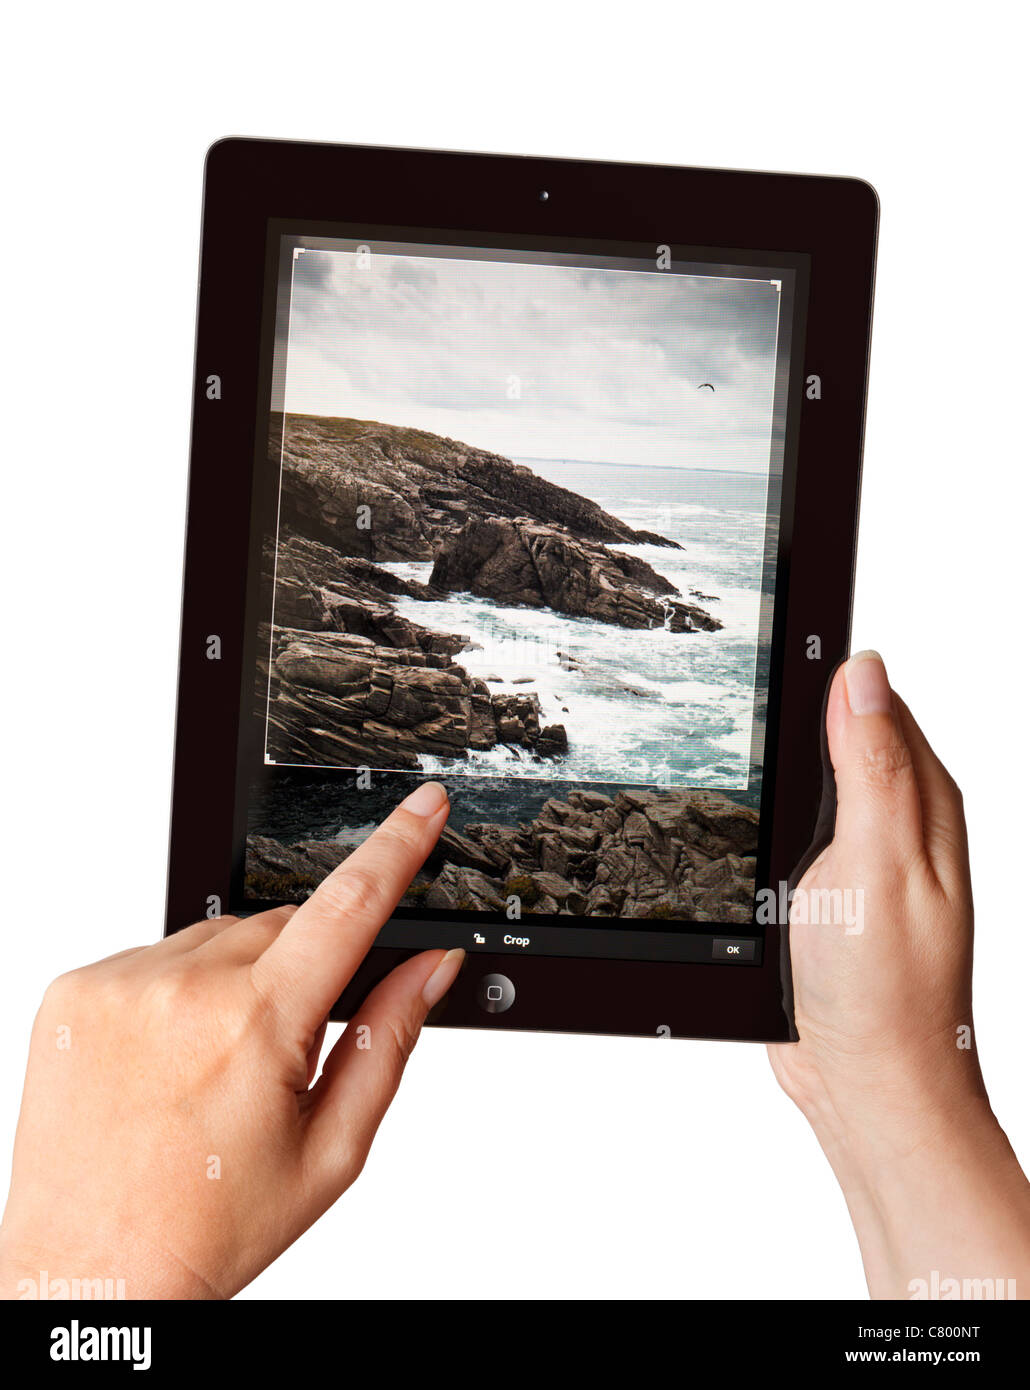 Hands holding an iPad2 using a Photoshop app to edit a photo - Stock Image